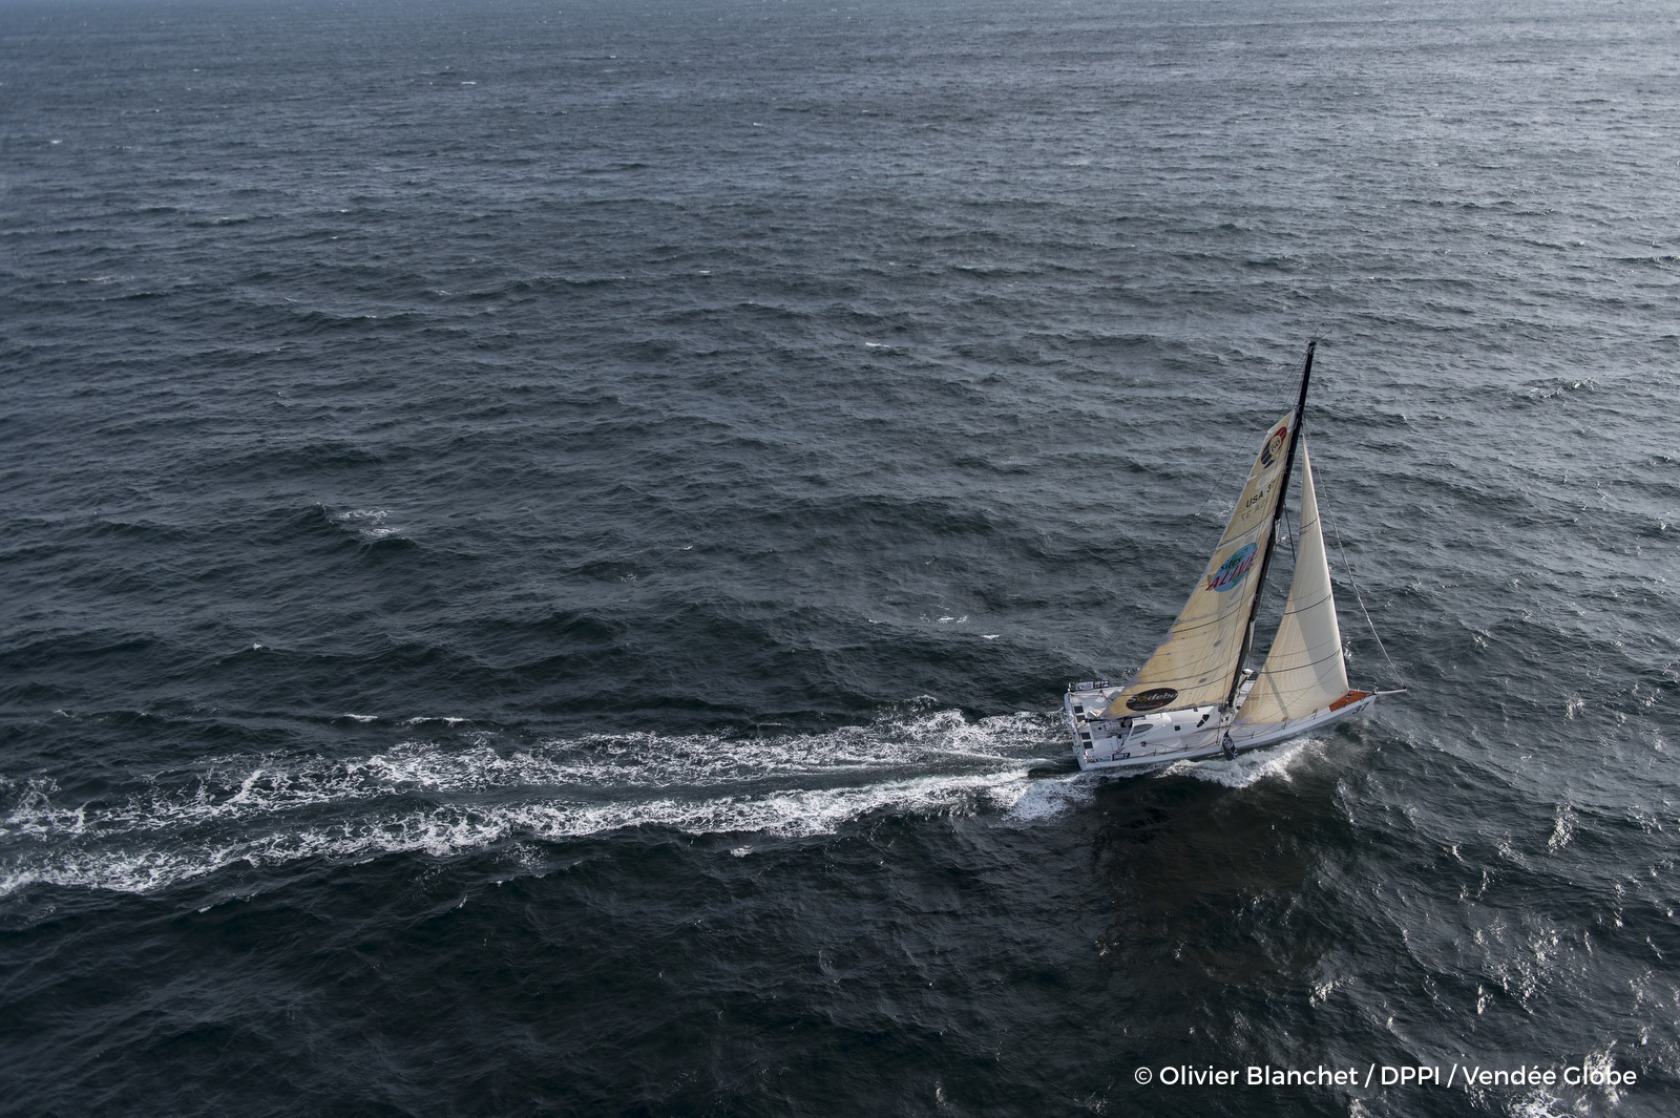 Sailing aerial images of the IMOCA boat Great American IV, skipper Rich Wilson (US), during training solo for the Vendee Globe 2016, off Les Sables d'Olonne, on October 4, 2016 - Photo Olivier Blanchet / DPPI / Vendée GlobeImages aériennes de Great Amer